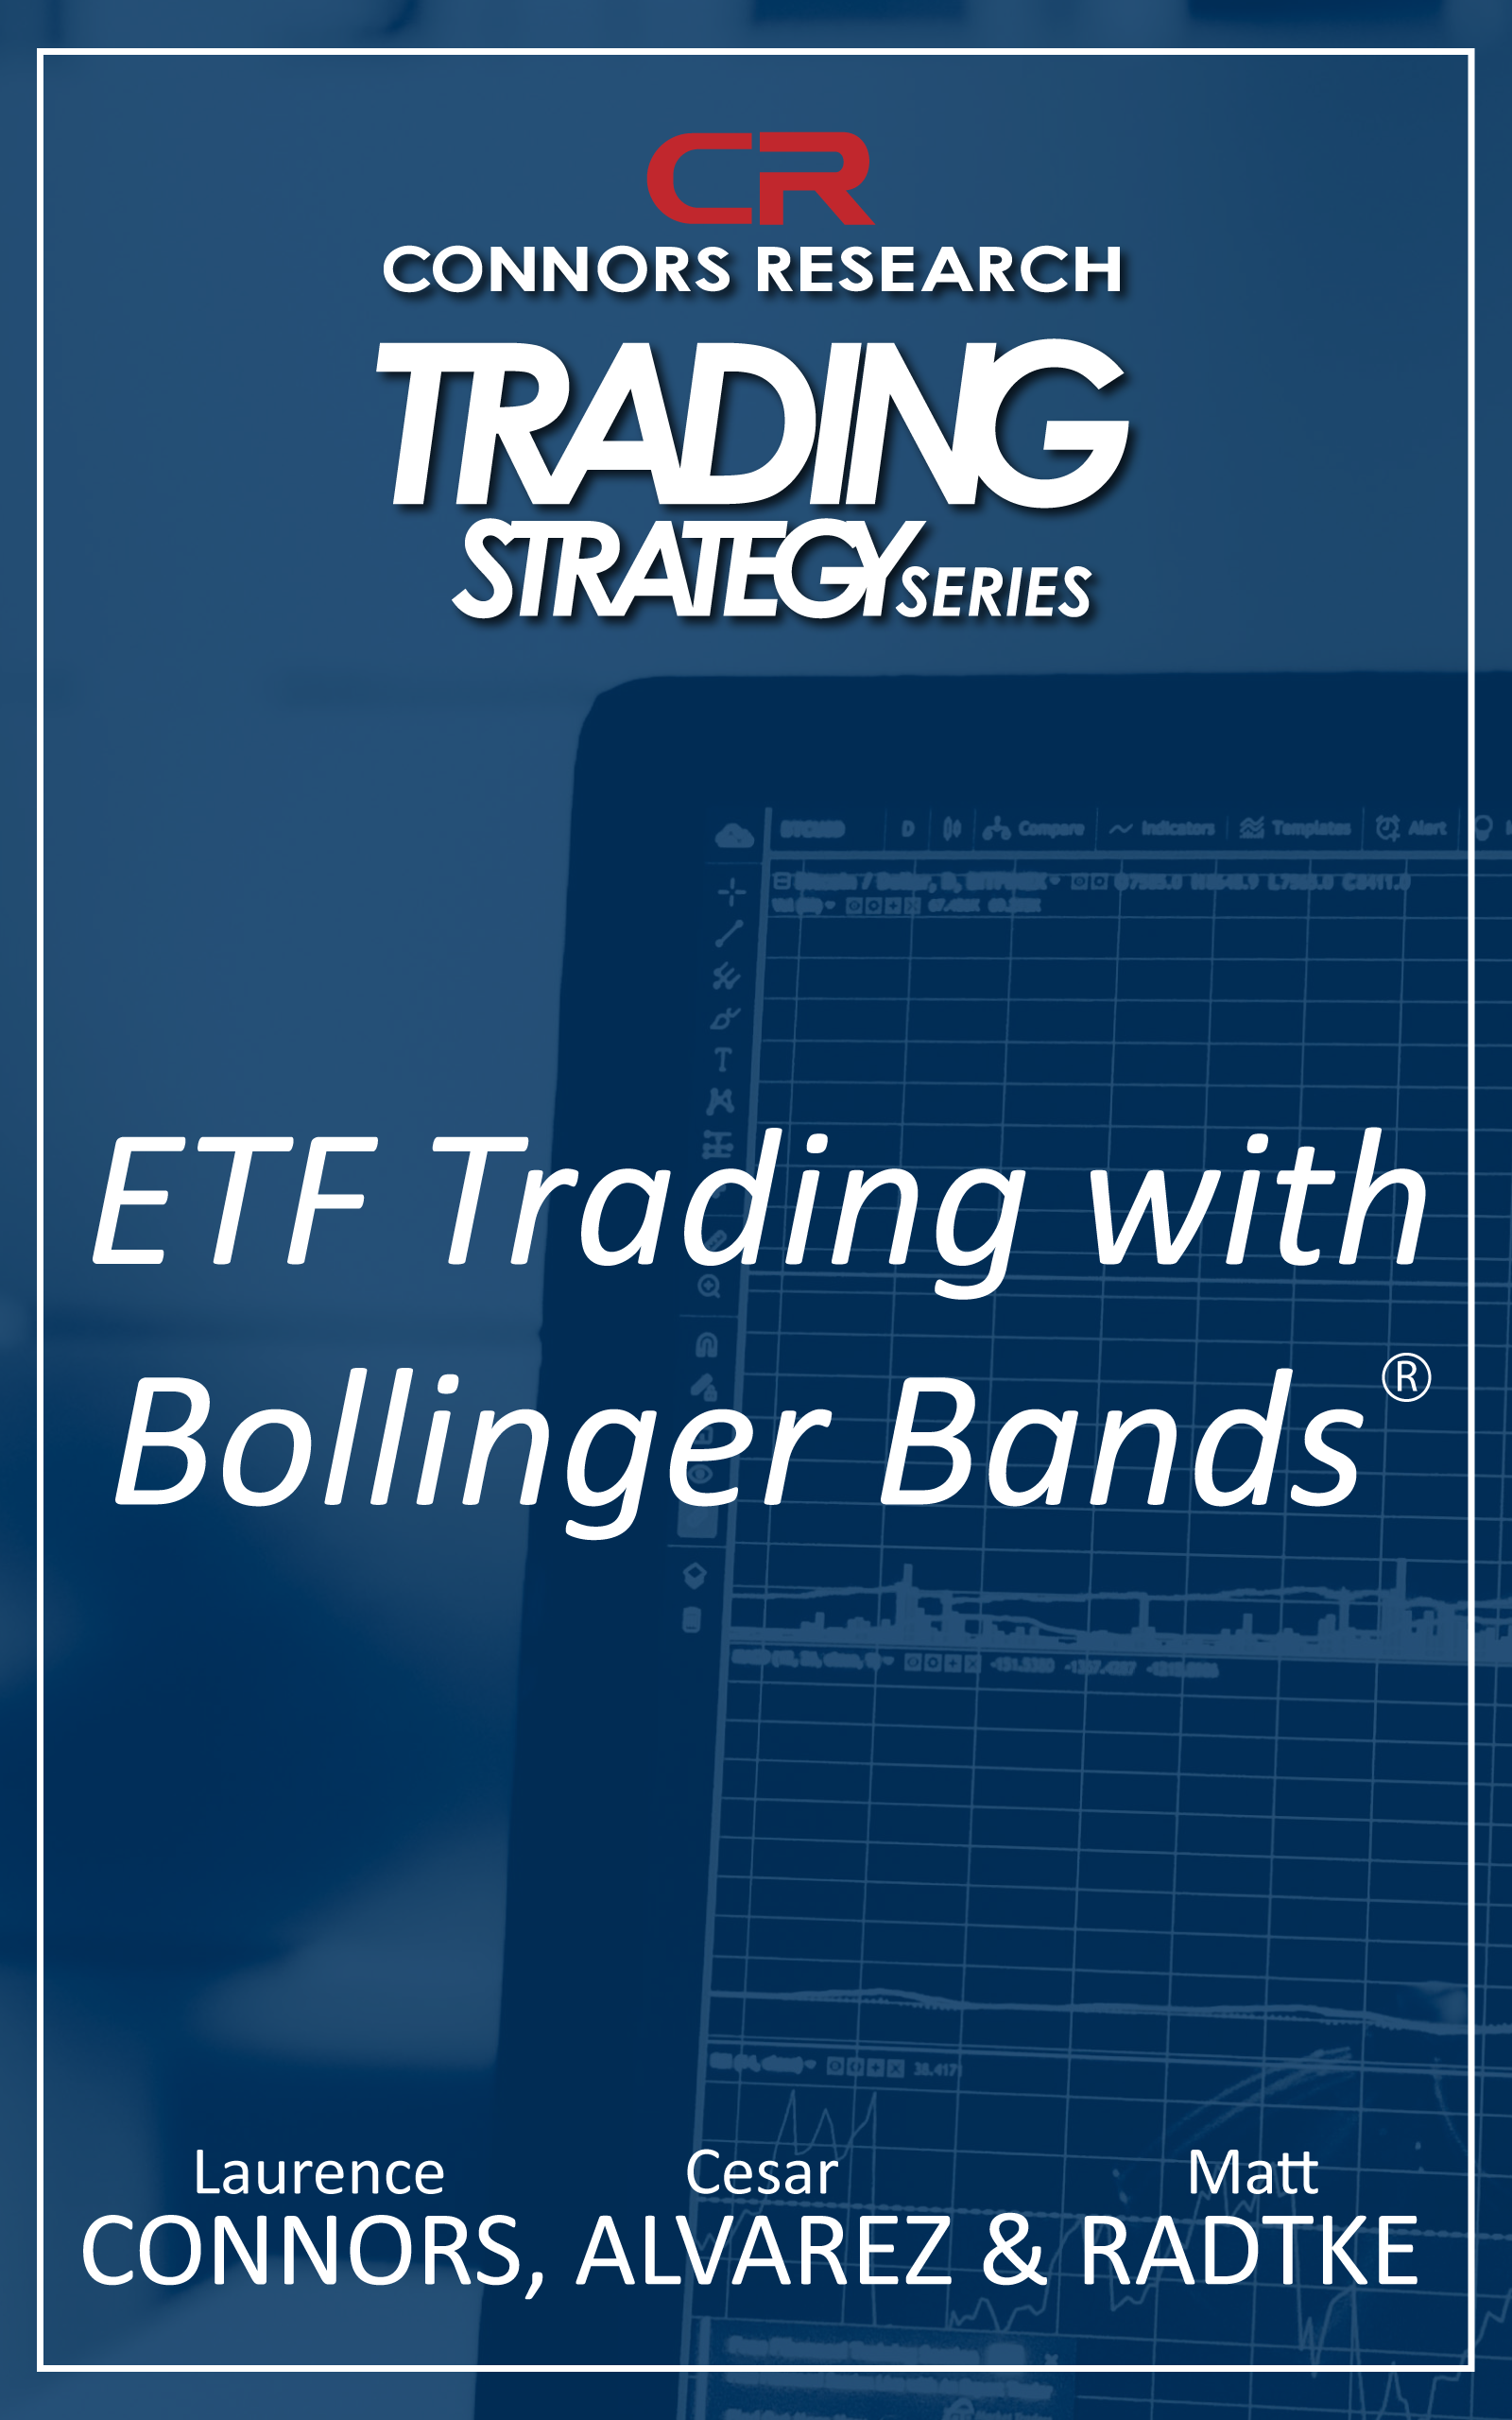 Connors Research Trading Strategy Series: ETF Trading with Bollinger Bands BOO-CRBBE-D